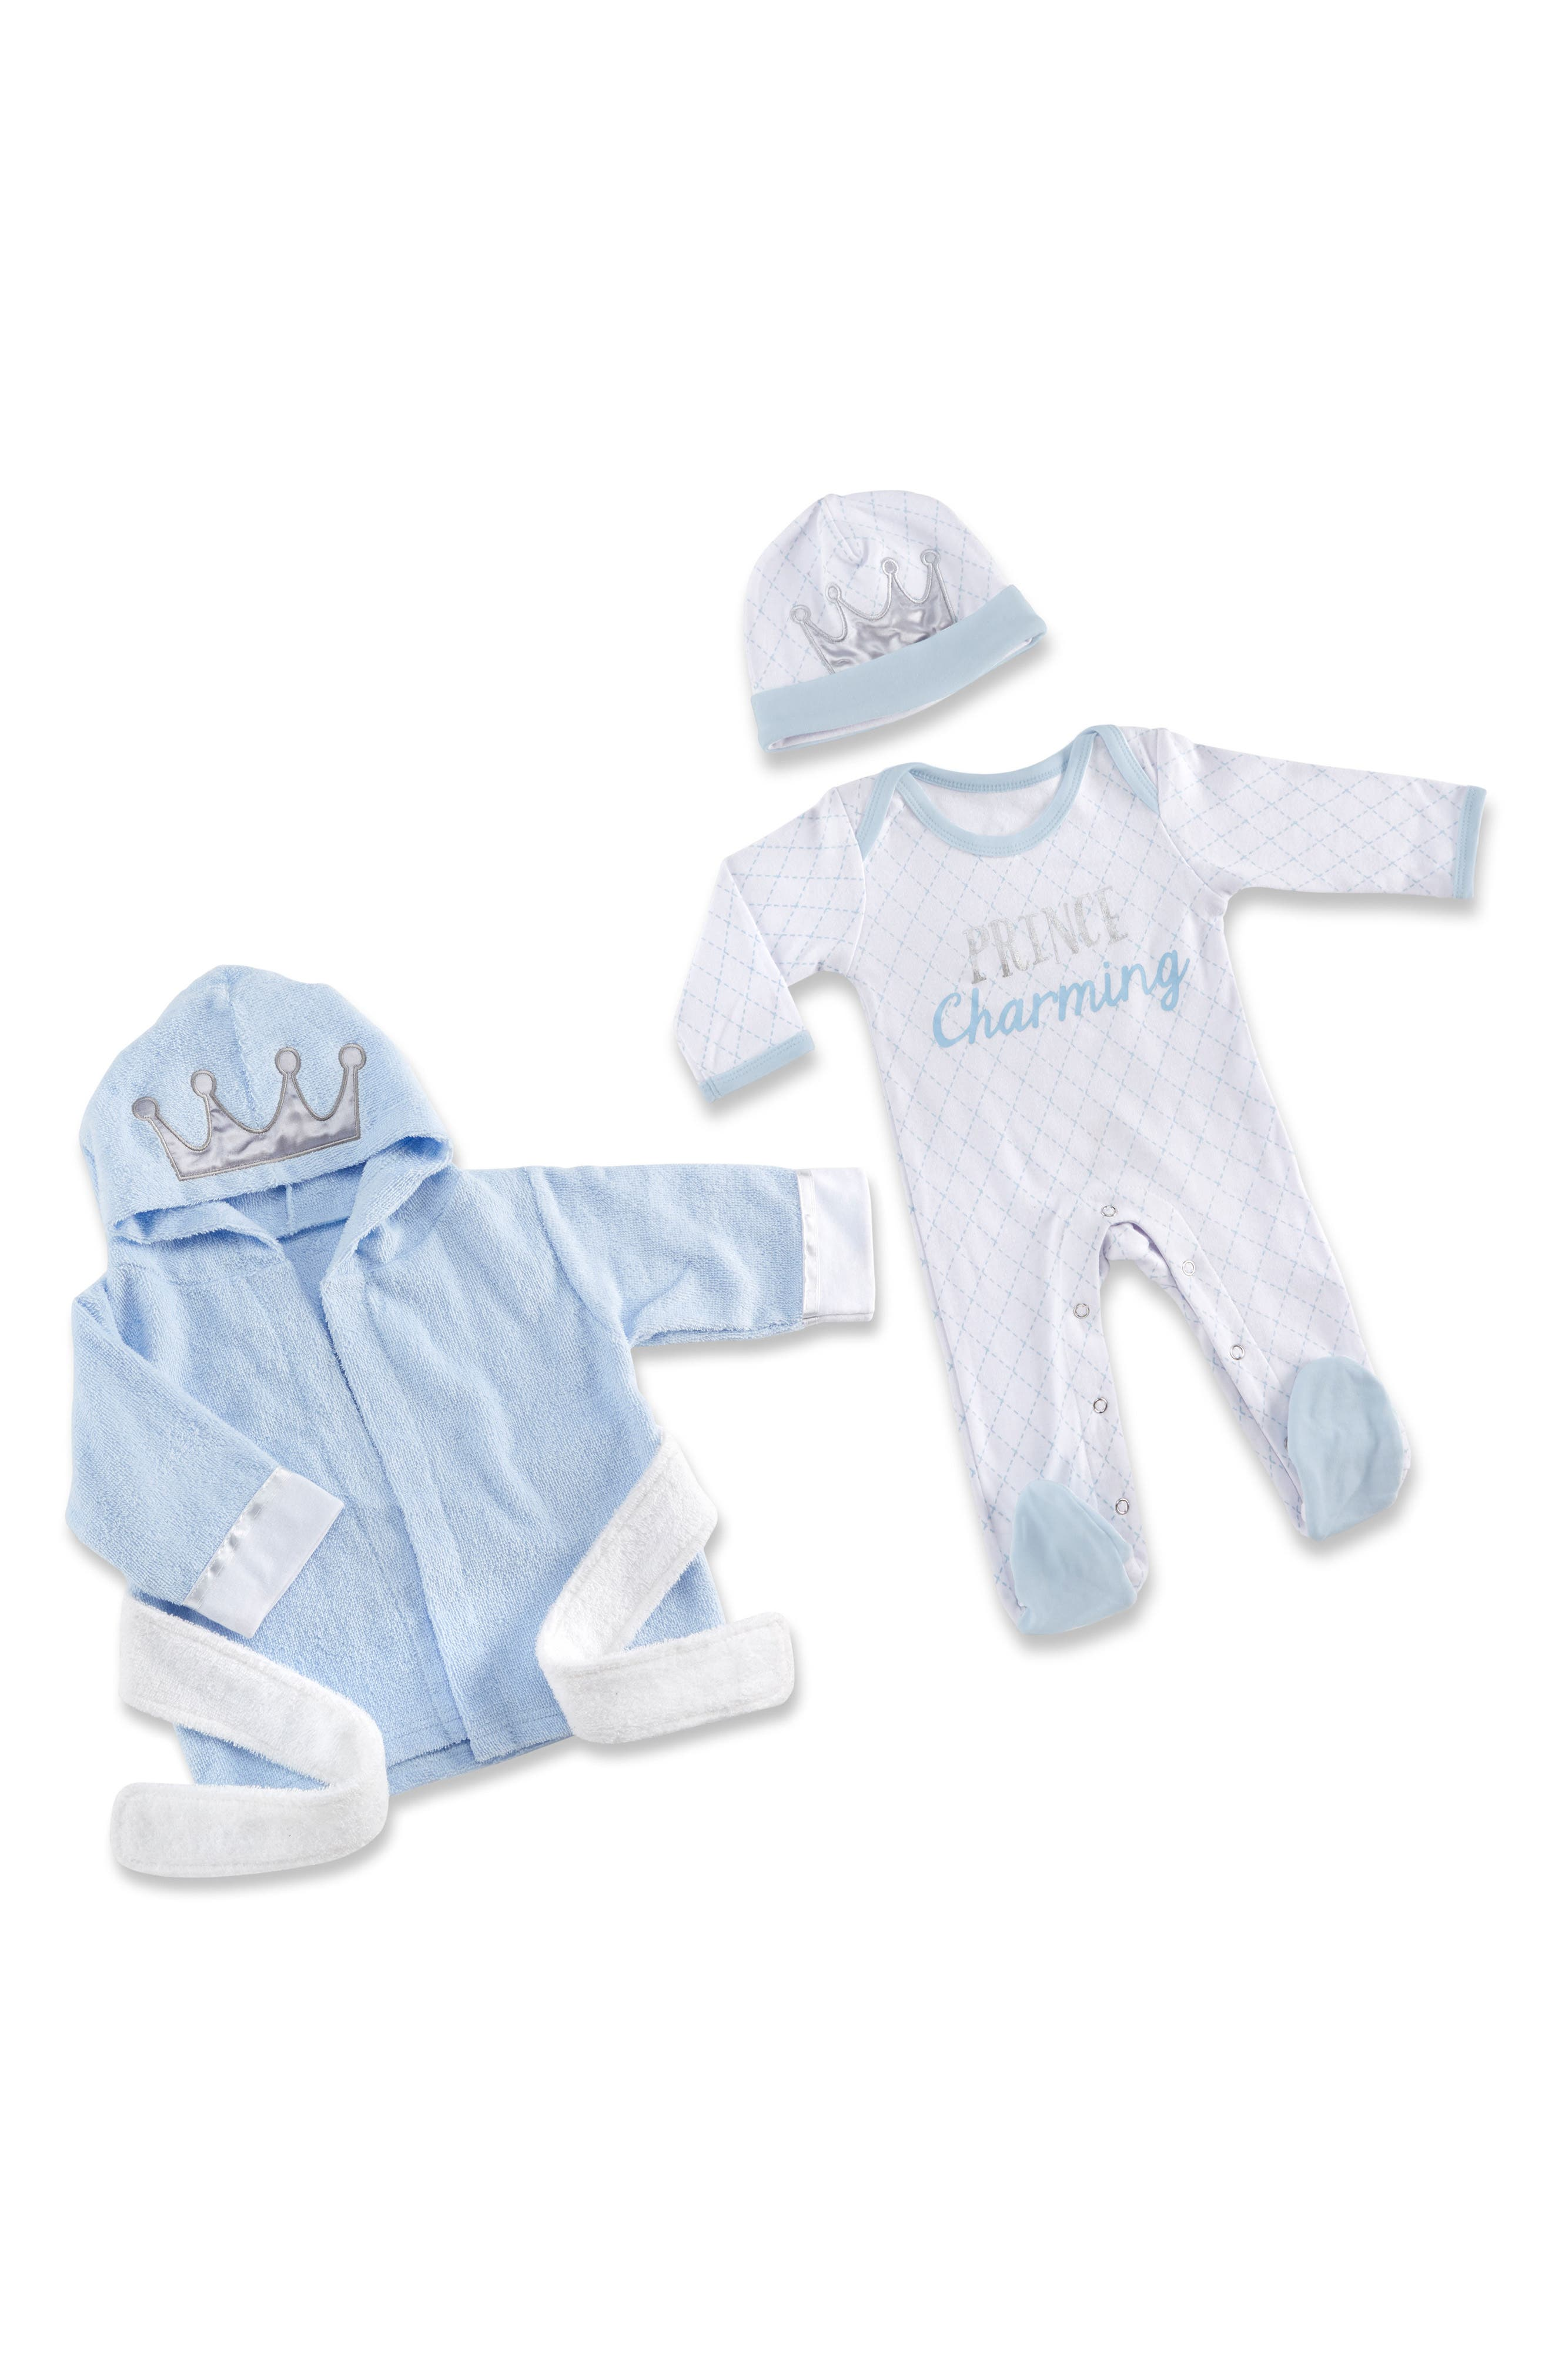 Little Prince Plush Robe, One-Piece Pajamas & Hat Set,                         Main,                         color, Blue/ White